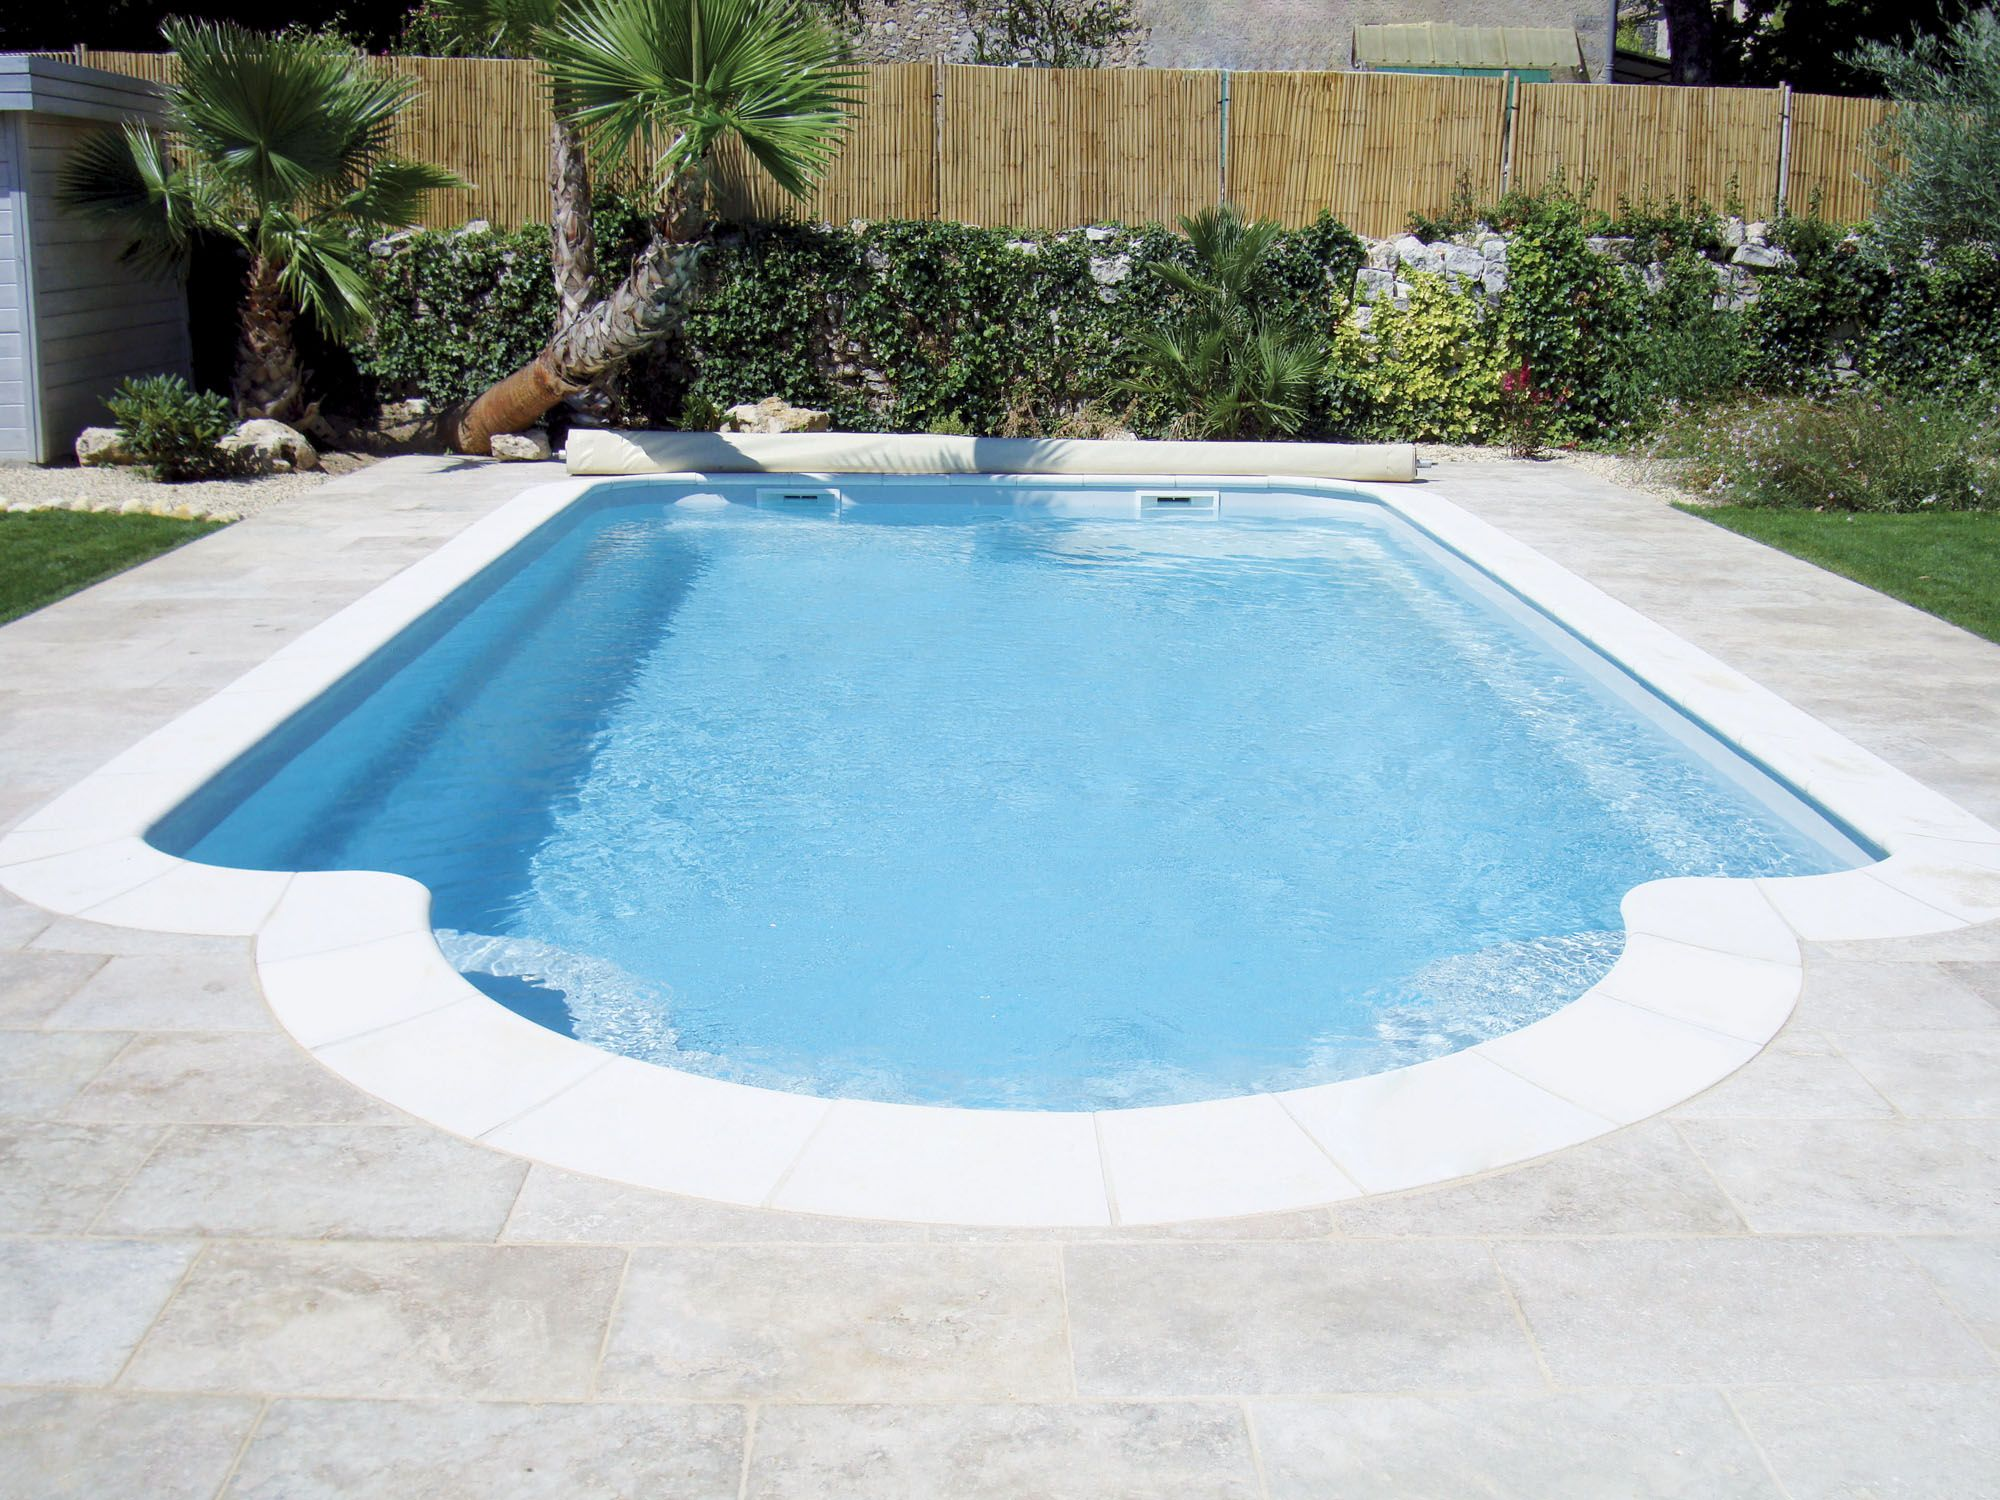 Piscine coque polyester arp ge fabrication fran aise for Prix piscine coque polyester 8x4